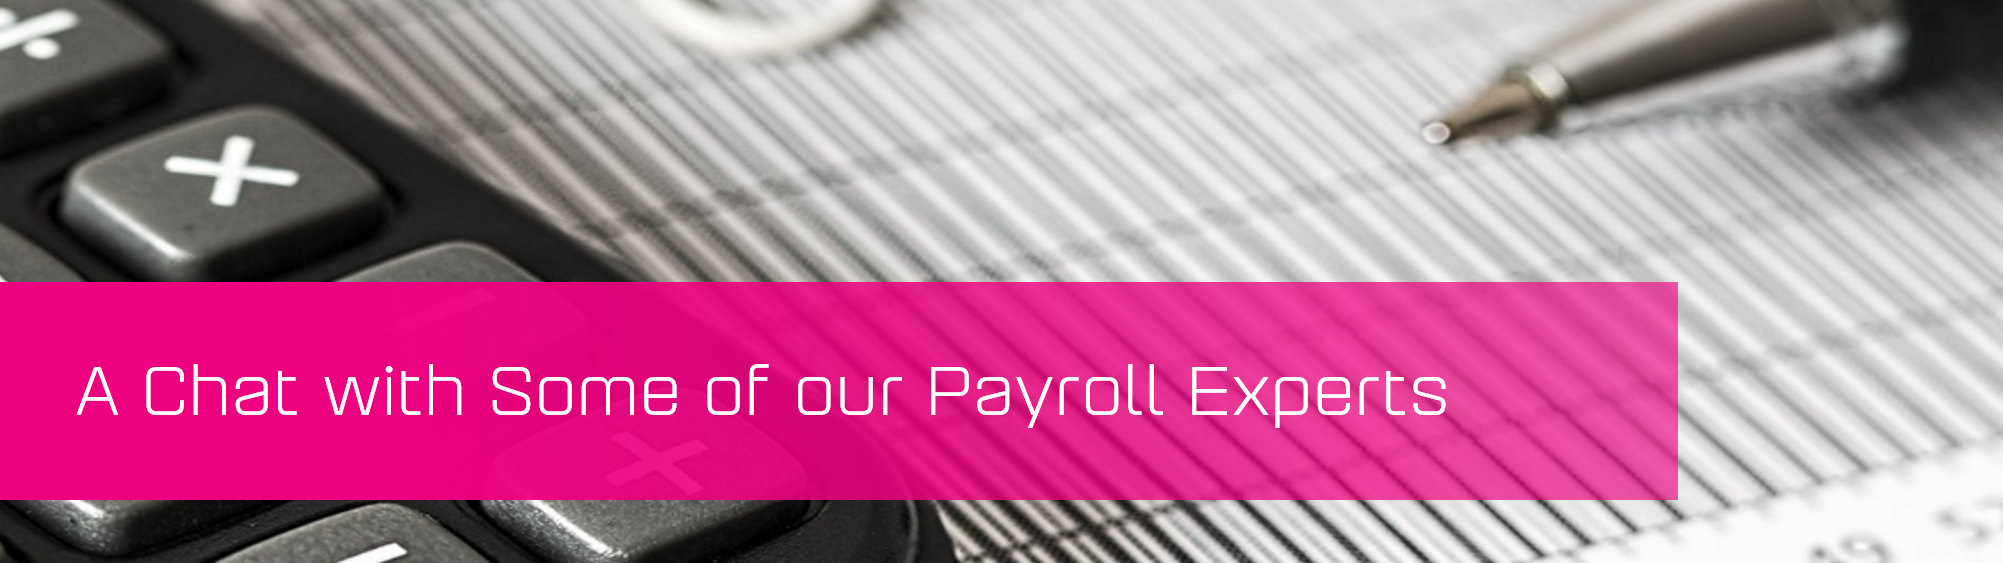 KCS SA - Blog - A Chat with Some of our Payroll Experts banner